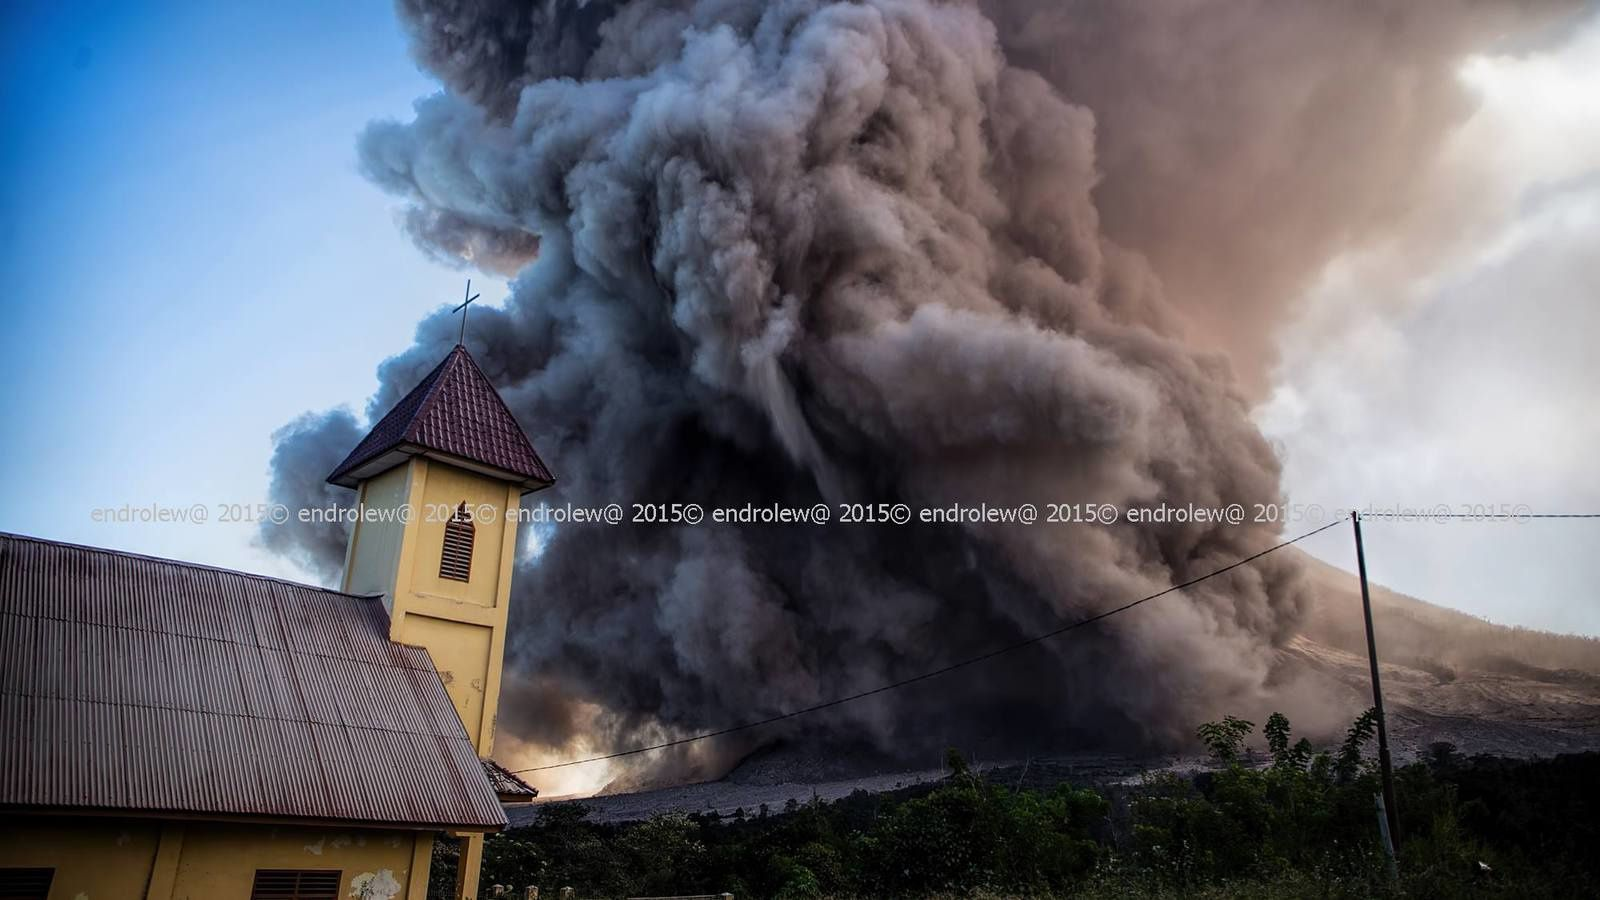 Sinabung and a pyroclastic flow as seen from the southeast, June 29 at 3:02 p.m. & 3:08 p.m. - photos endrolew@